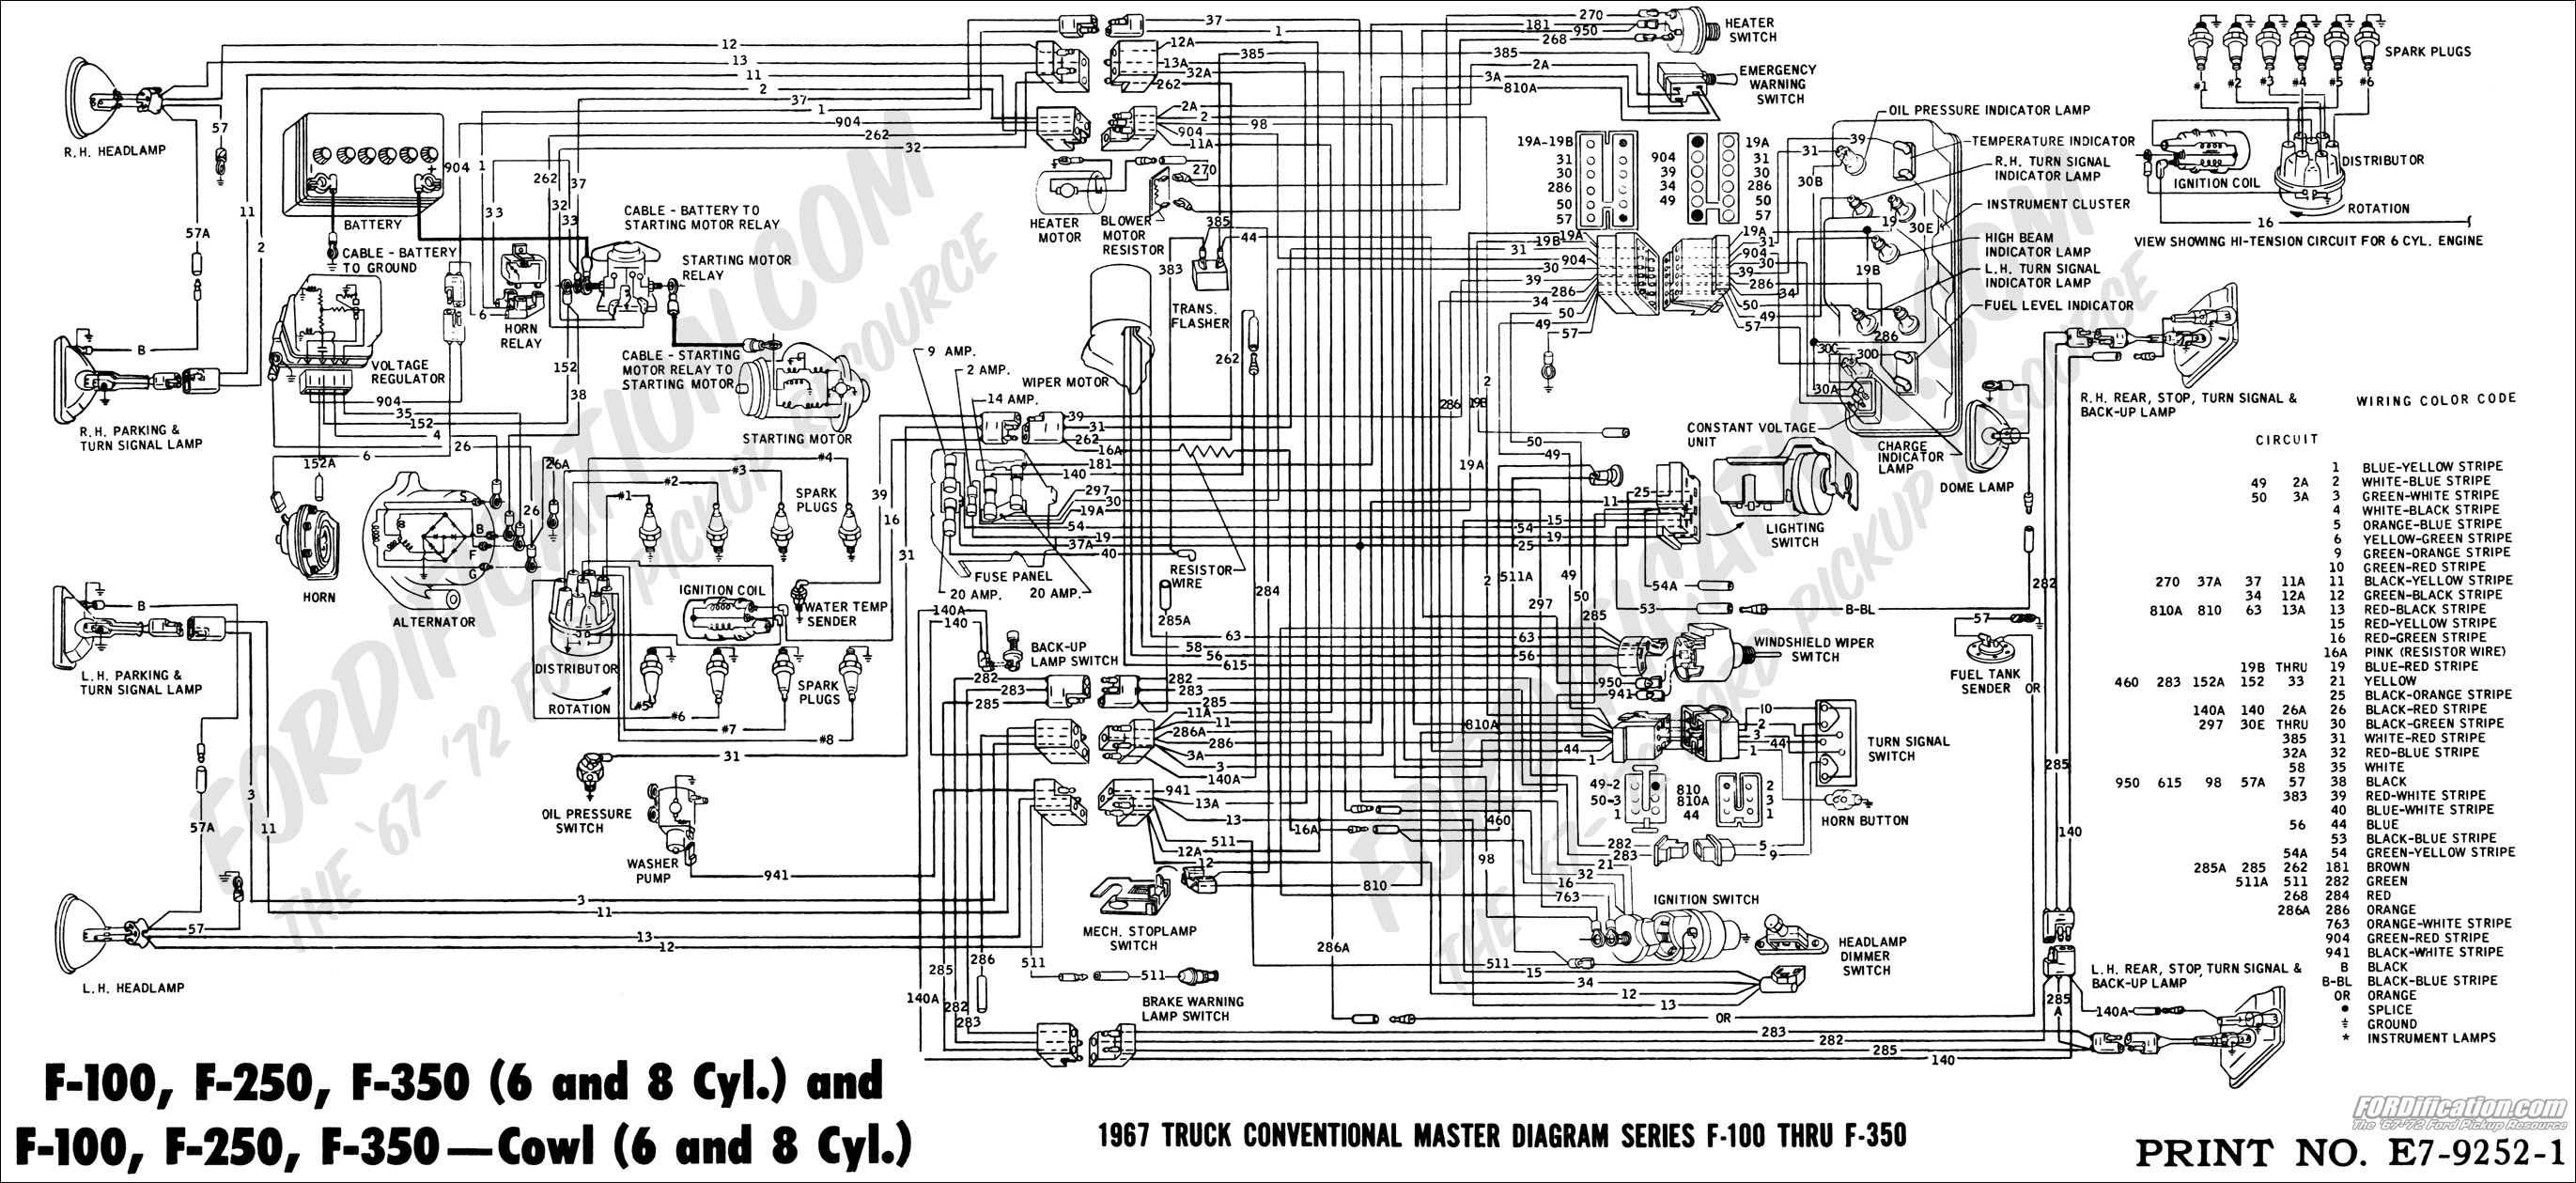 2007 Ford Lcf Wiring Diagram Libraries F 150 C290 Connector Radio 2006 Todays2006 Truck Completed Diagrams